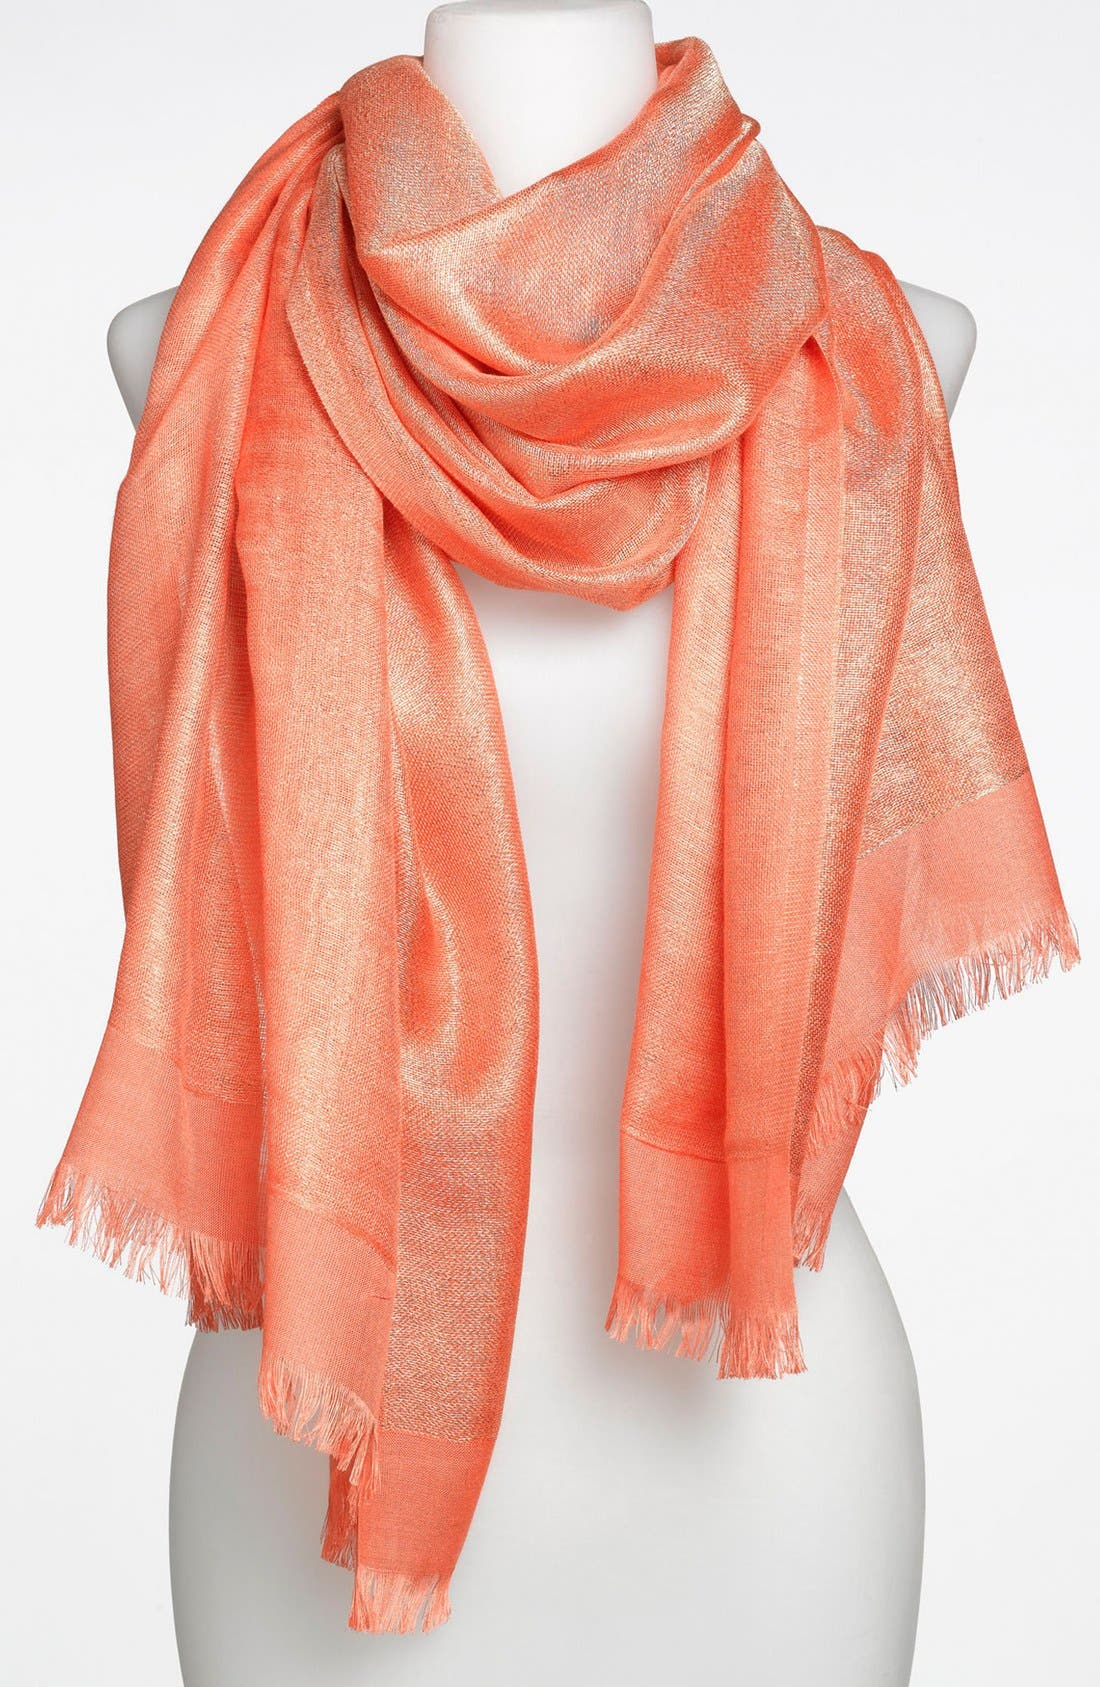 Alternate Image 1 Selected - Accessory Street 'Shine' Scarf